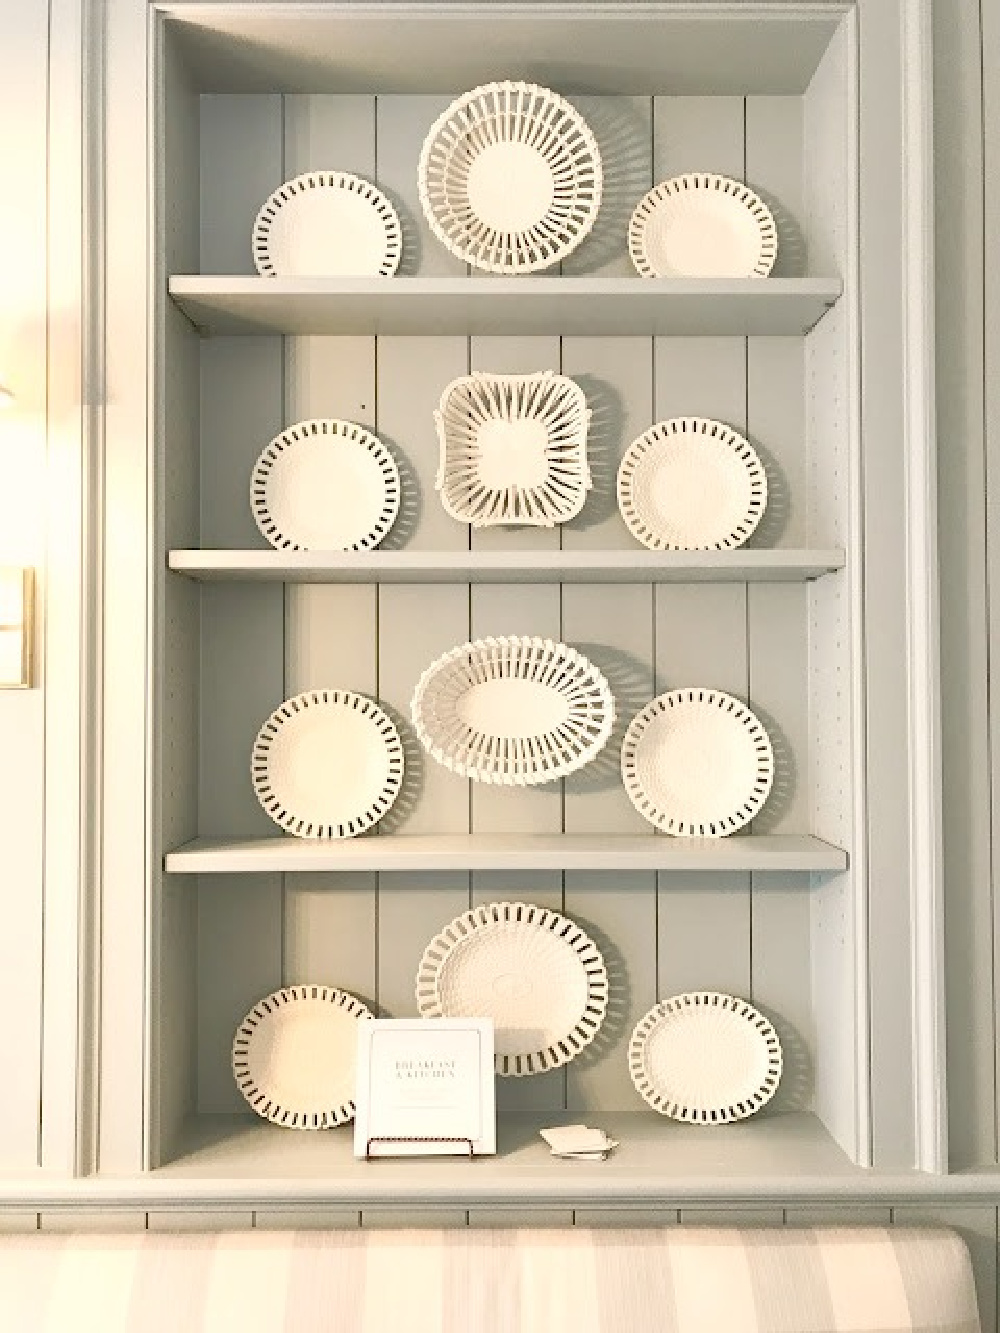 Lace creamware antique plates on blue painted shelves in traditional kitchen at Southeastern Designer Showhouse 2017. #farrowandballlightblue #diningroom #traditionalstyle #interiordesign